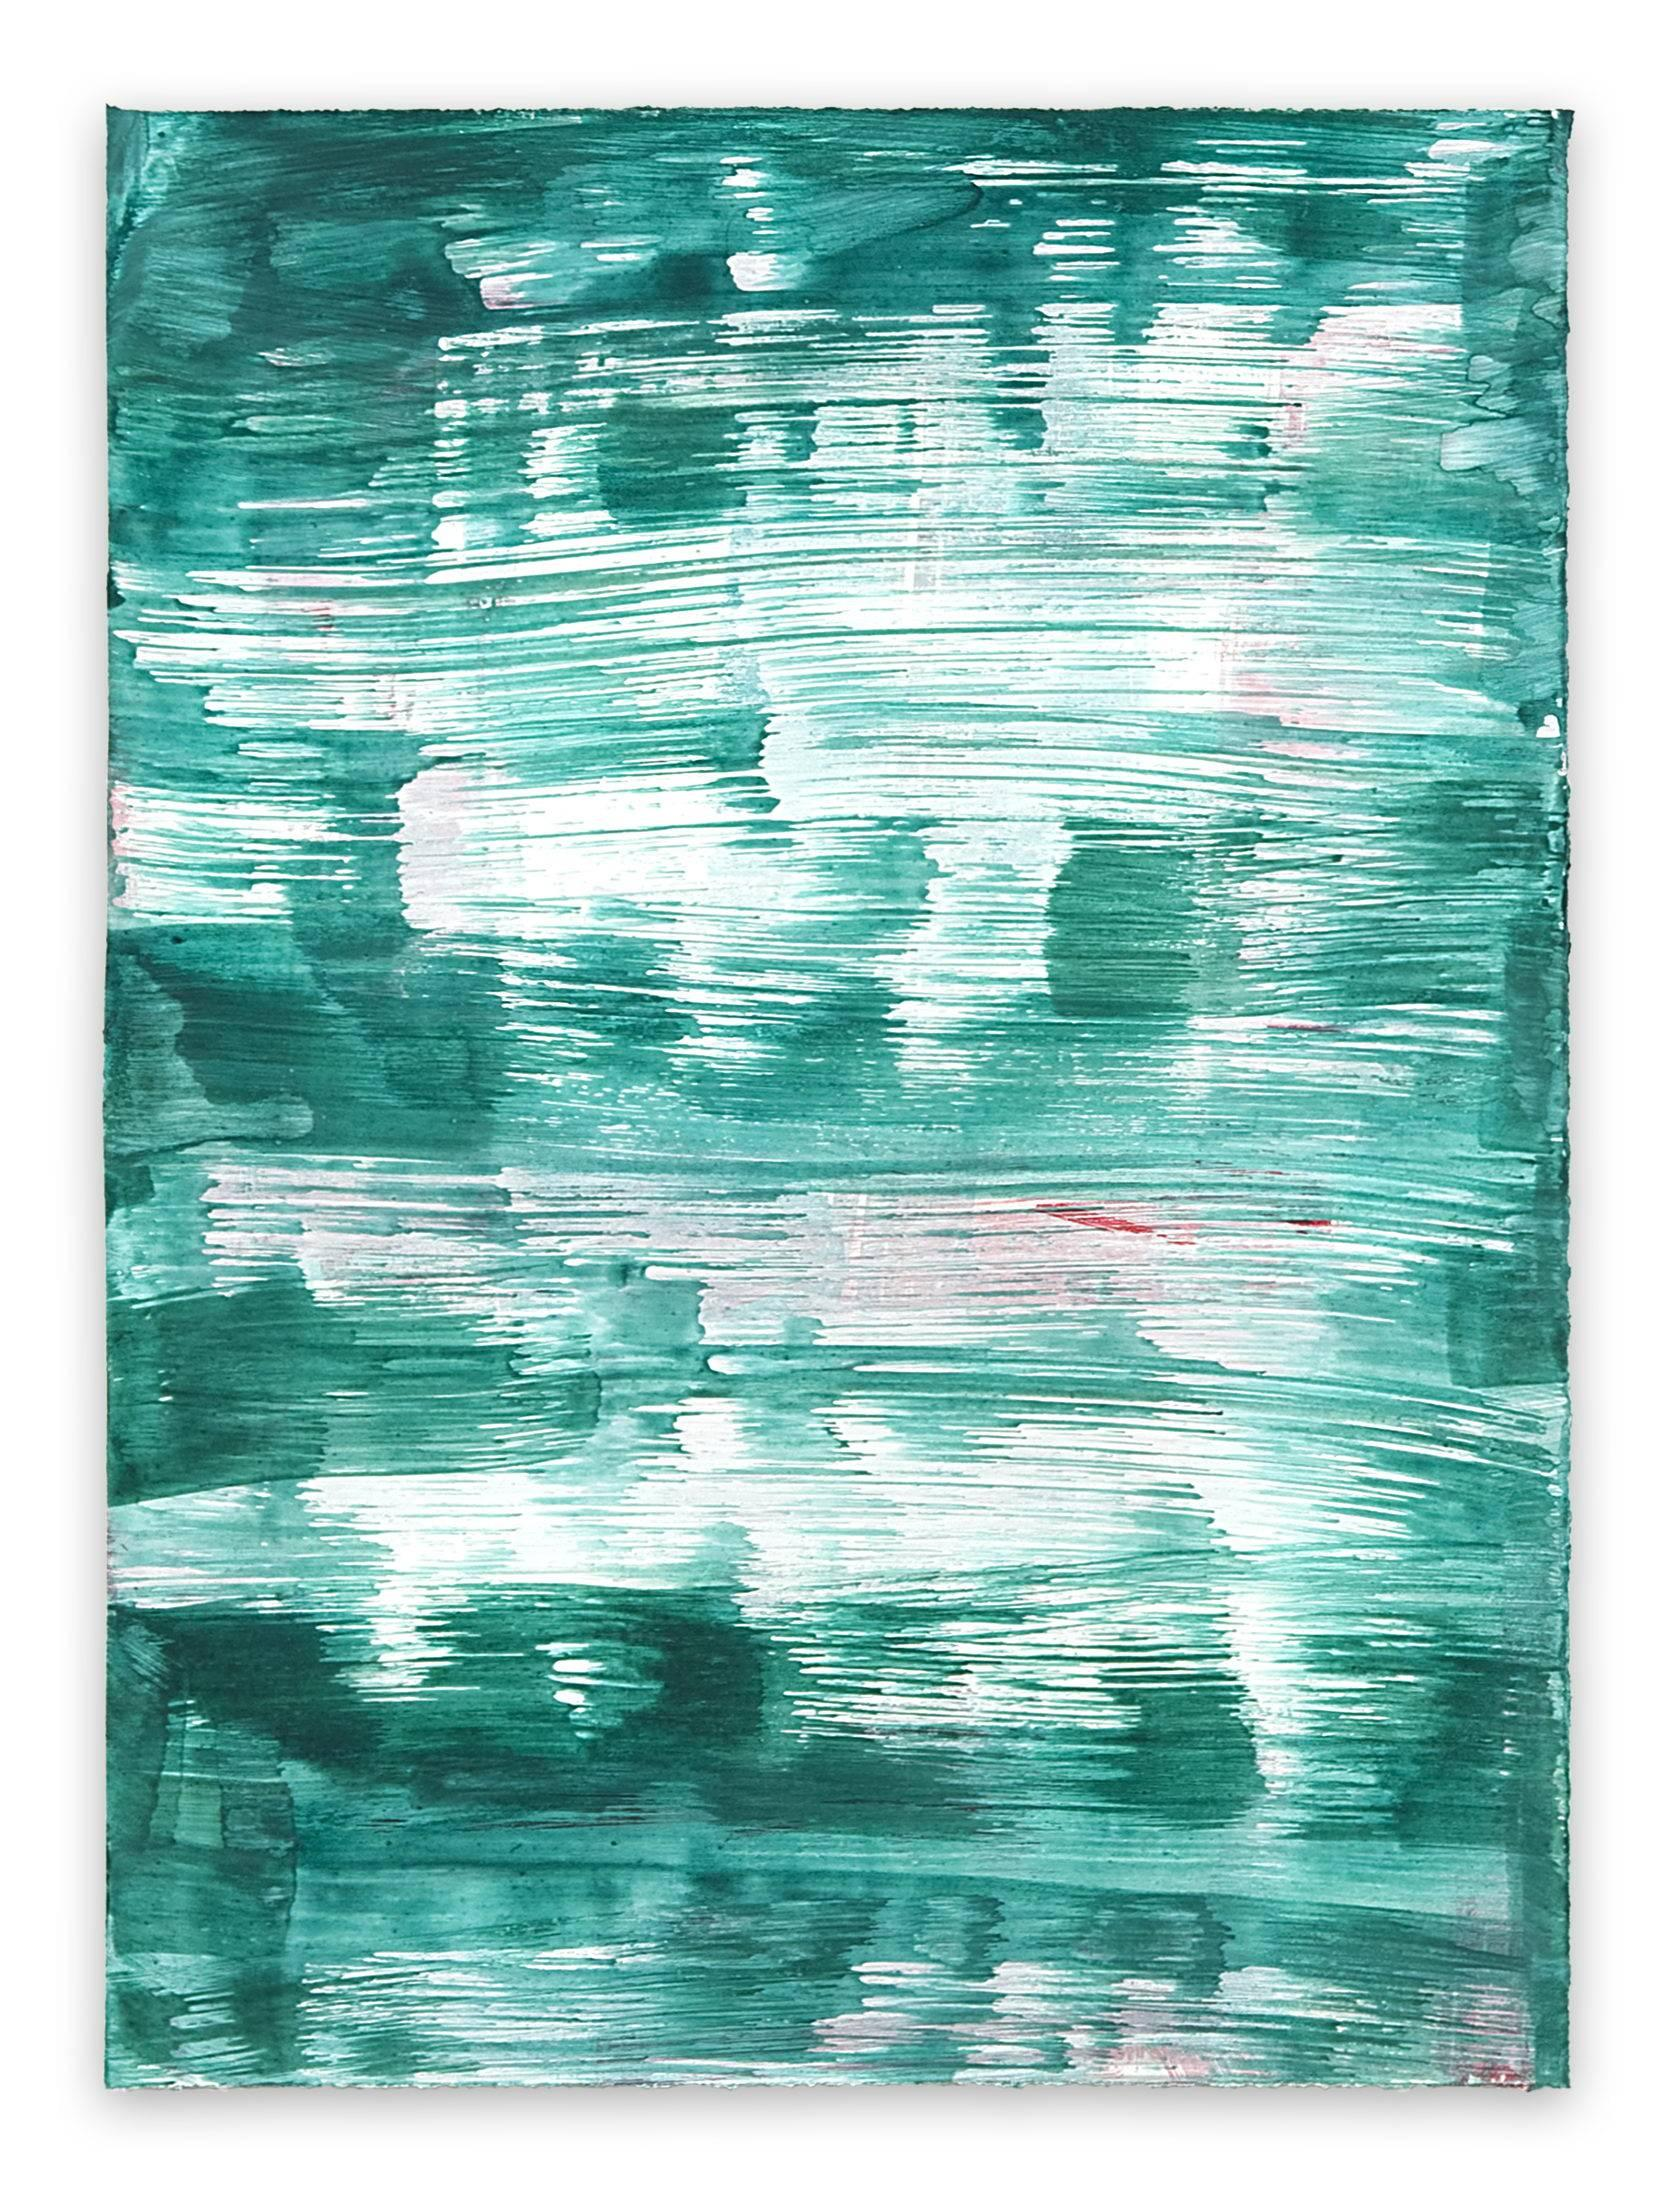 Schist 5 (Abstract painting)